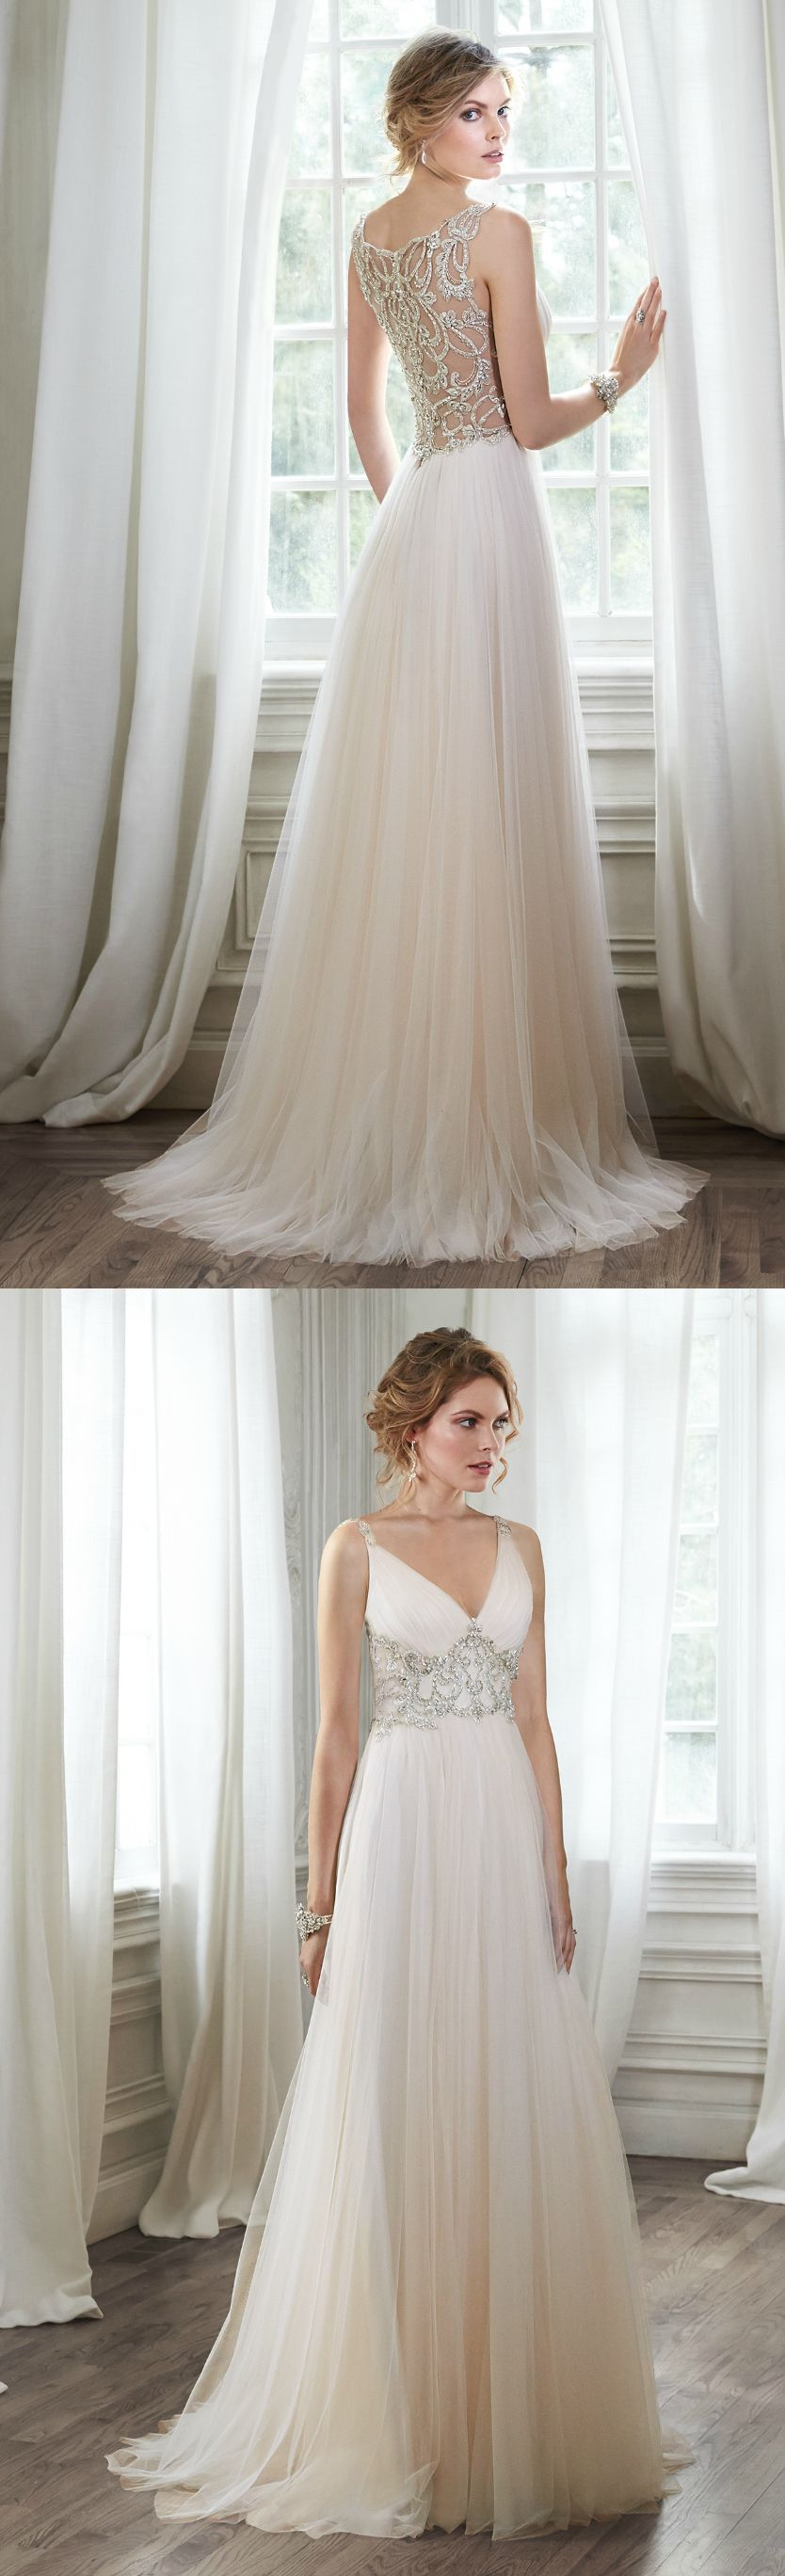 Maggie Sottero Phyllis ~ The Moderne Bridal, Cork. Appointments ...